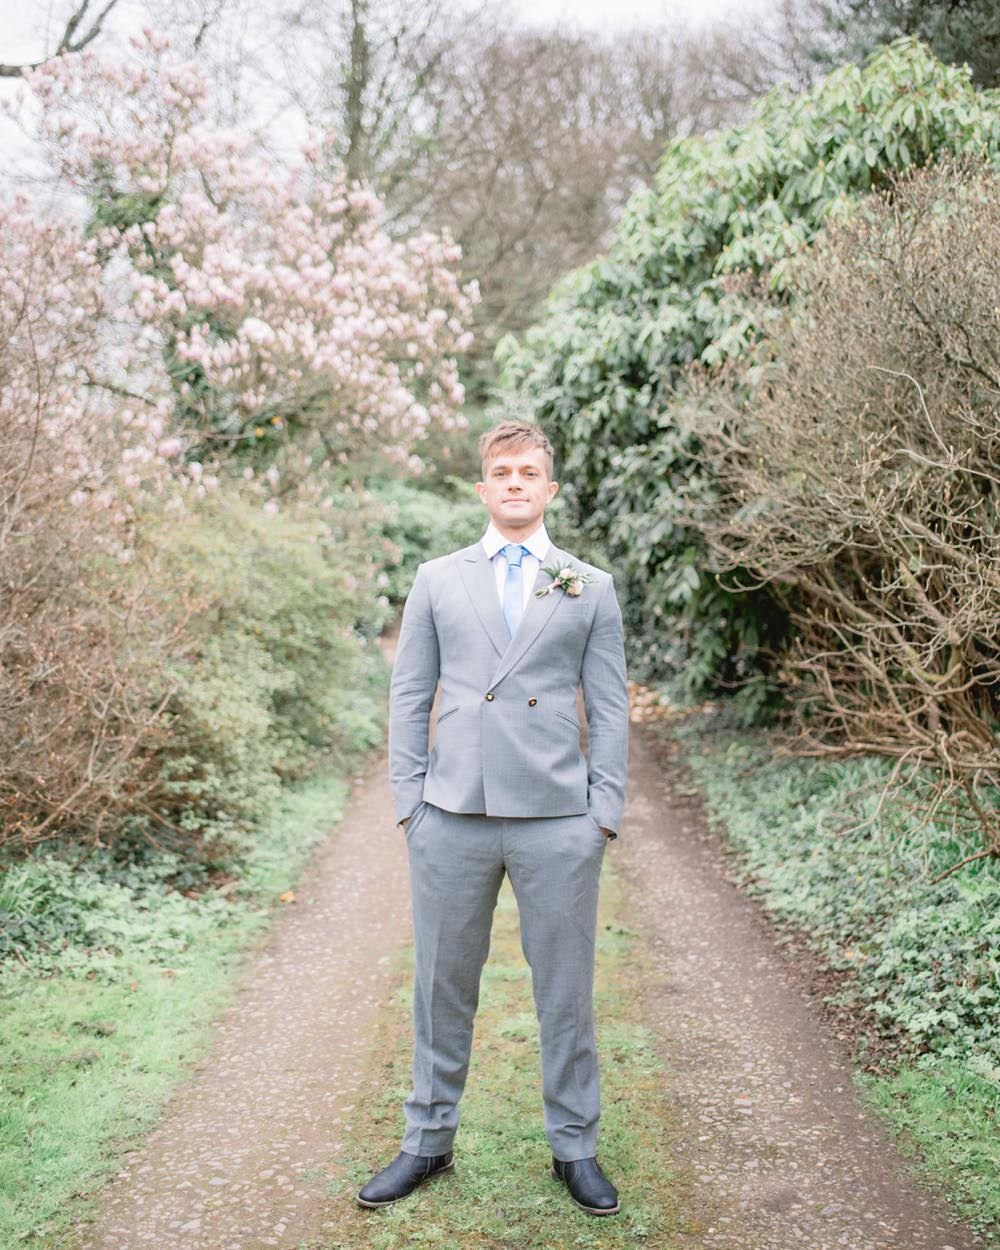 Groom Suit Grey Double Breasted Blue Tie Elegant Wedding Ideas Yll Weddings